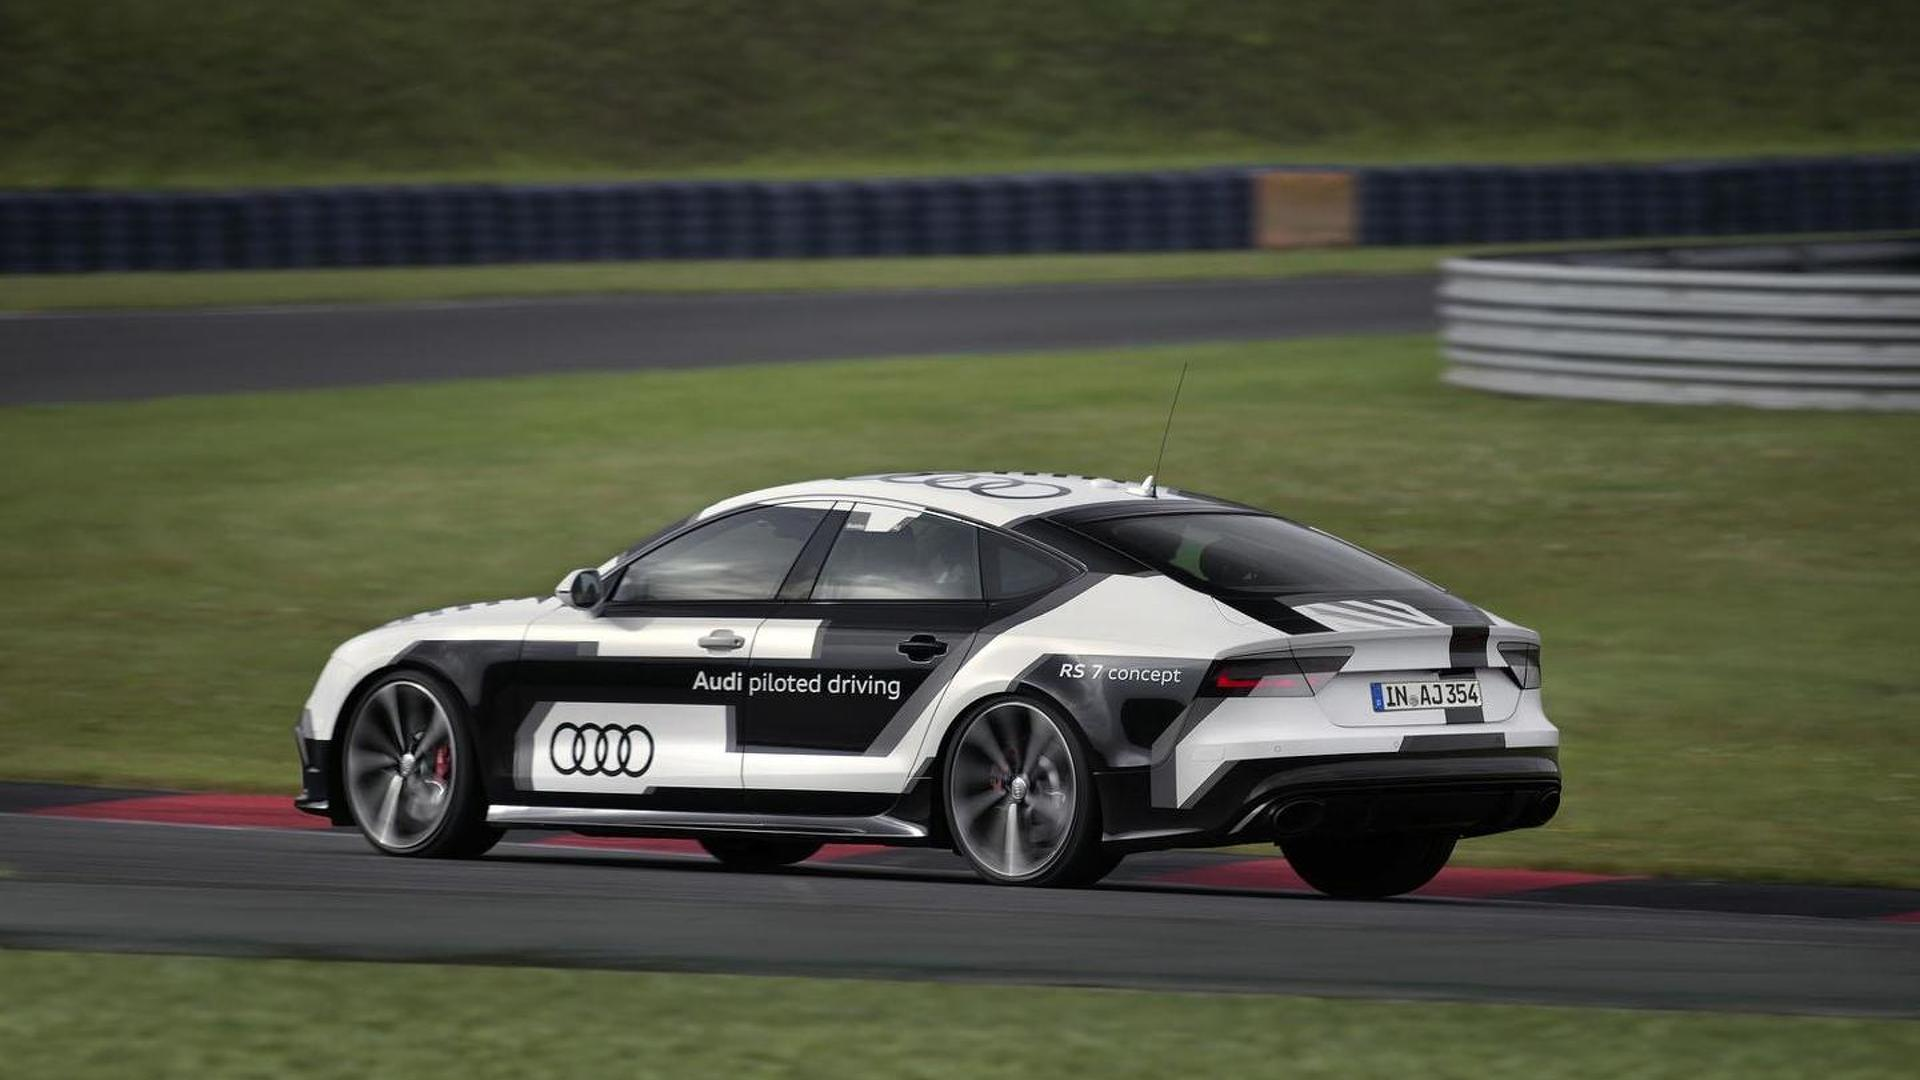 Audi RS7 Piloted Driving Concept на гоночной трассе